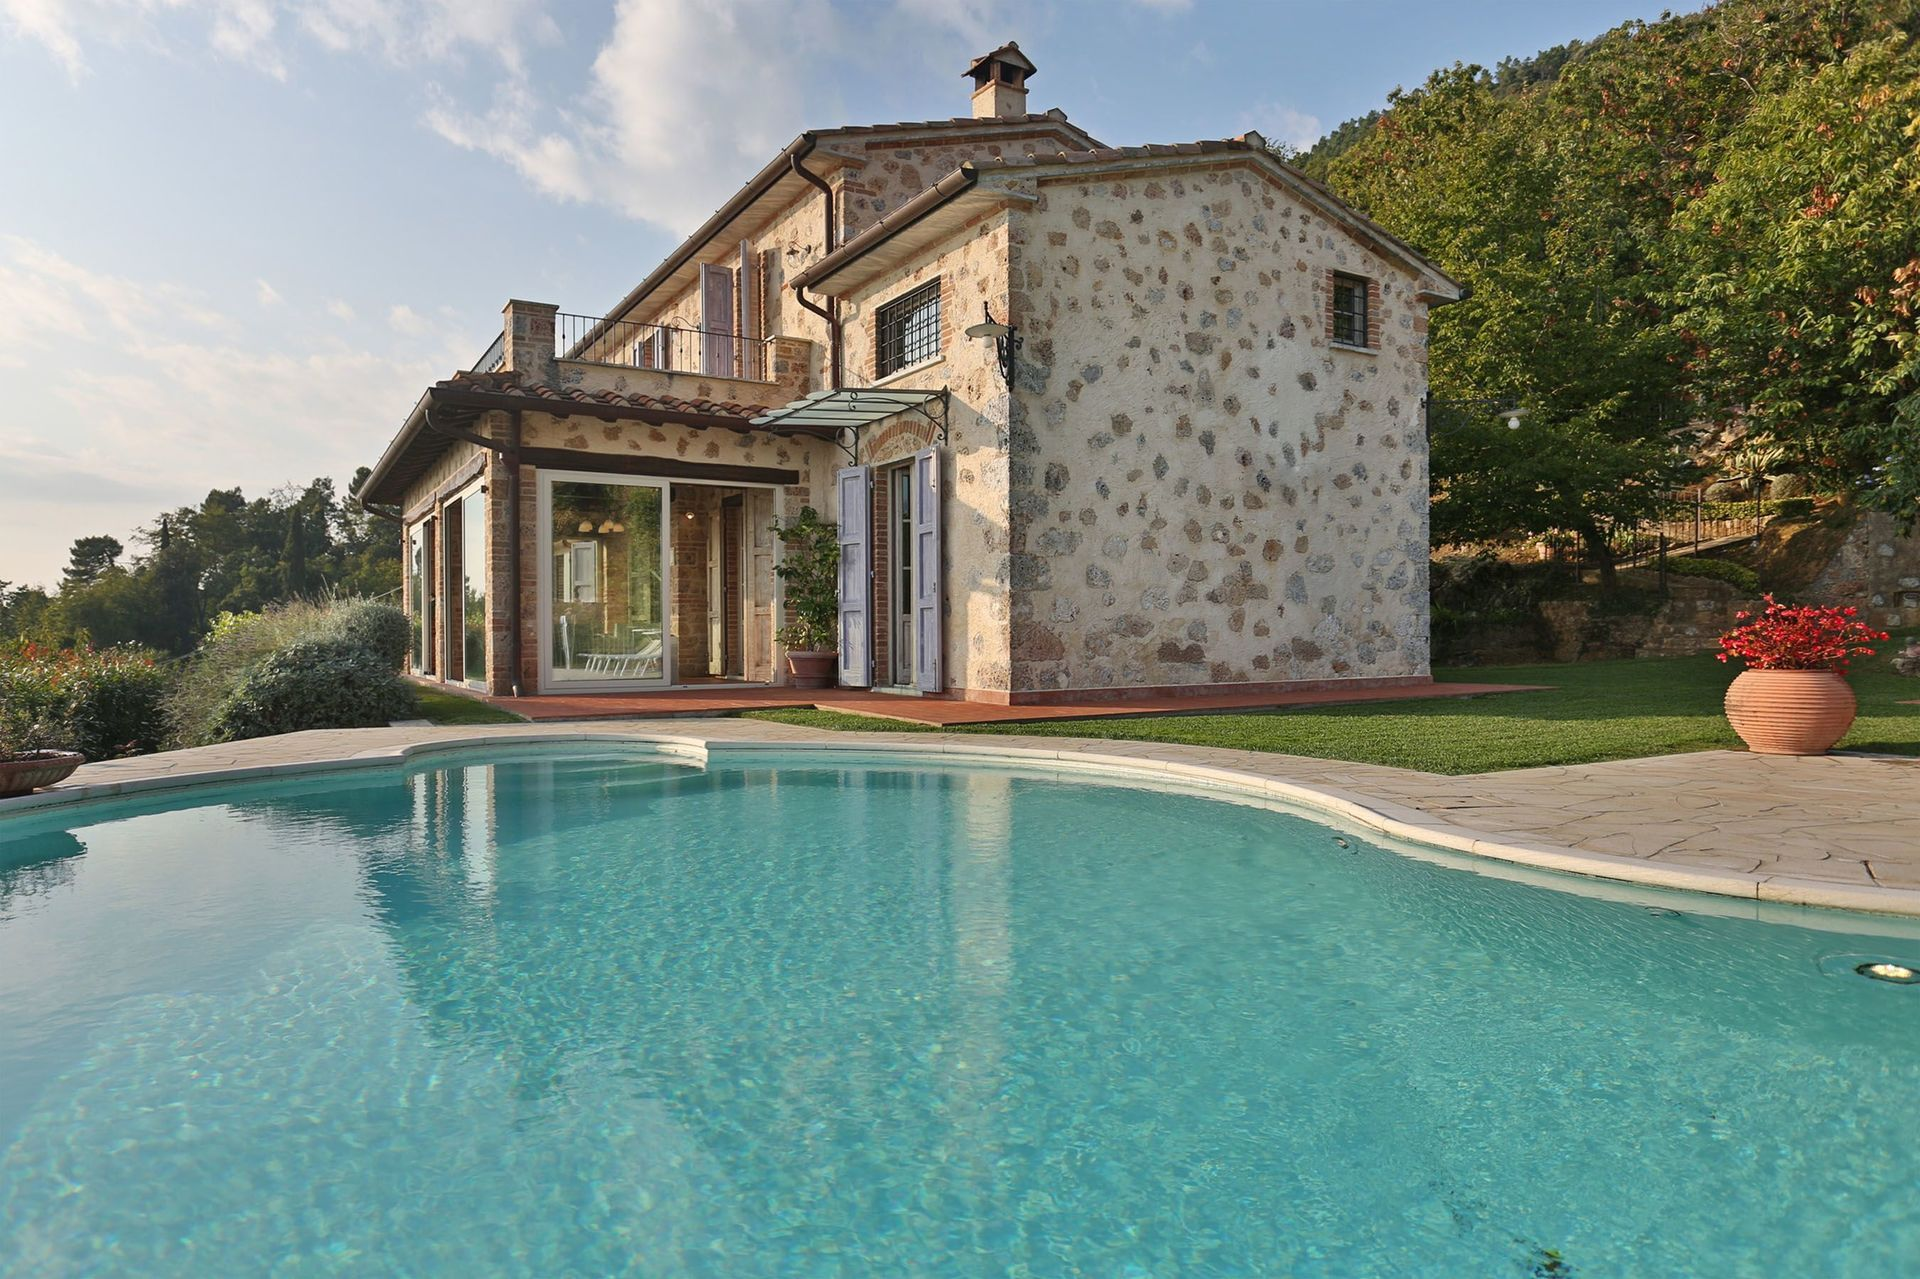 Italian Case Forte Dei Marmi la gigia: villa that sleeps 8 people in 4 bedrooms, located in